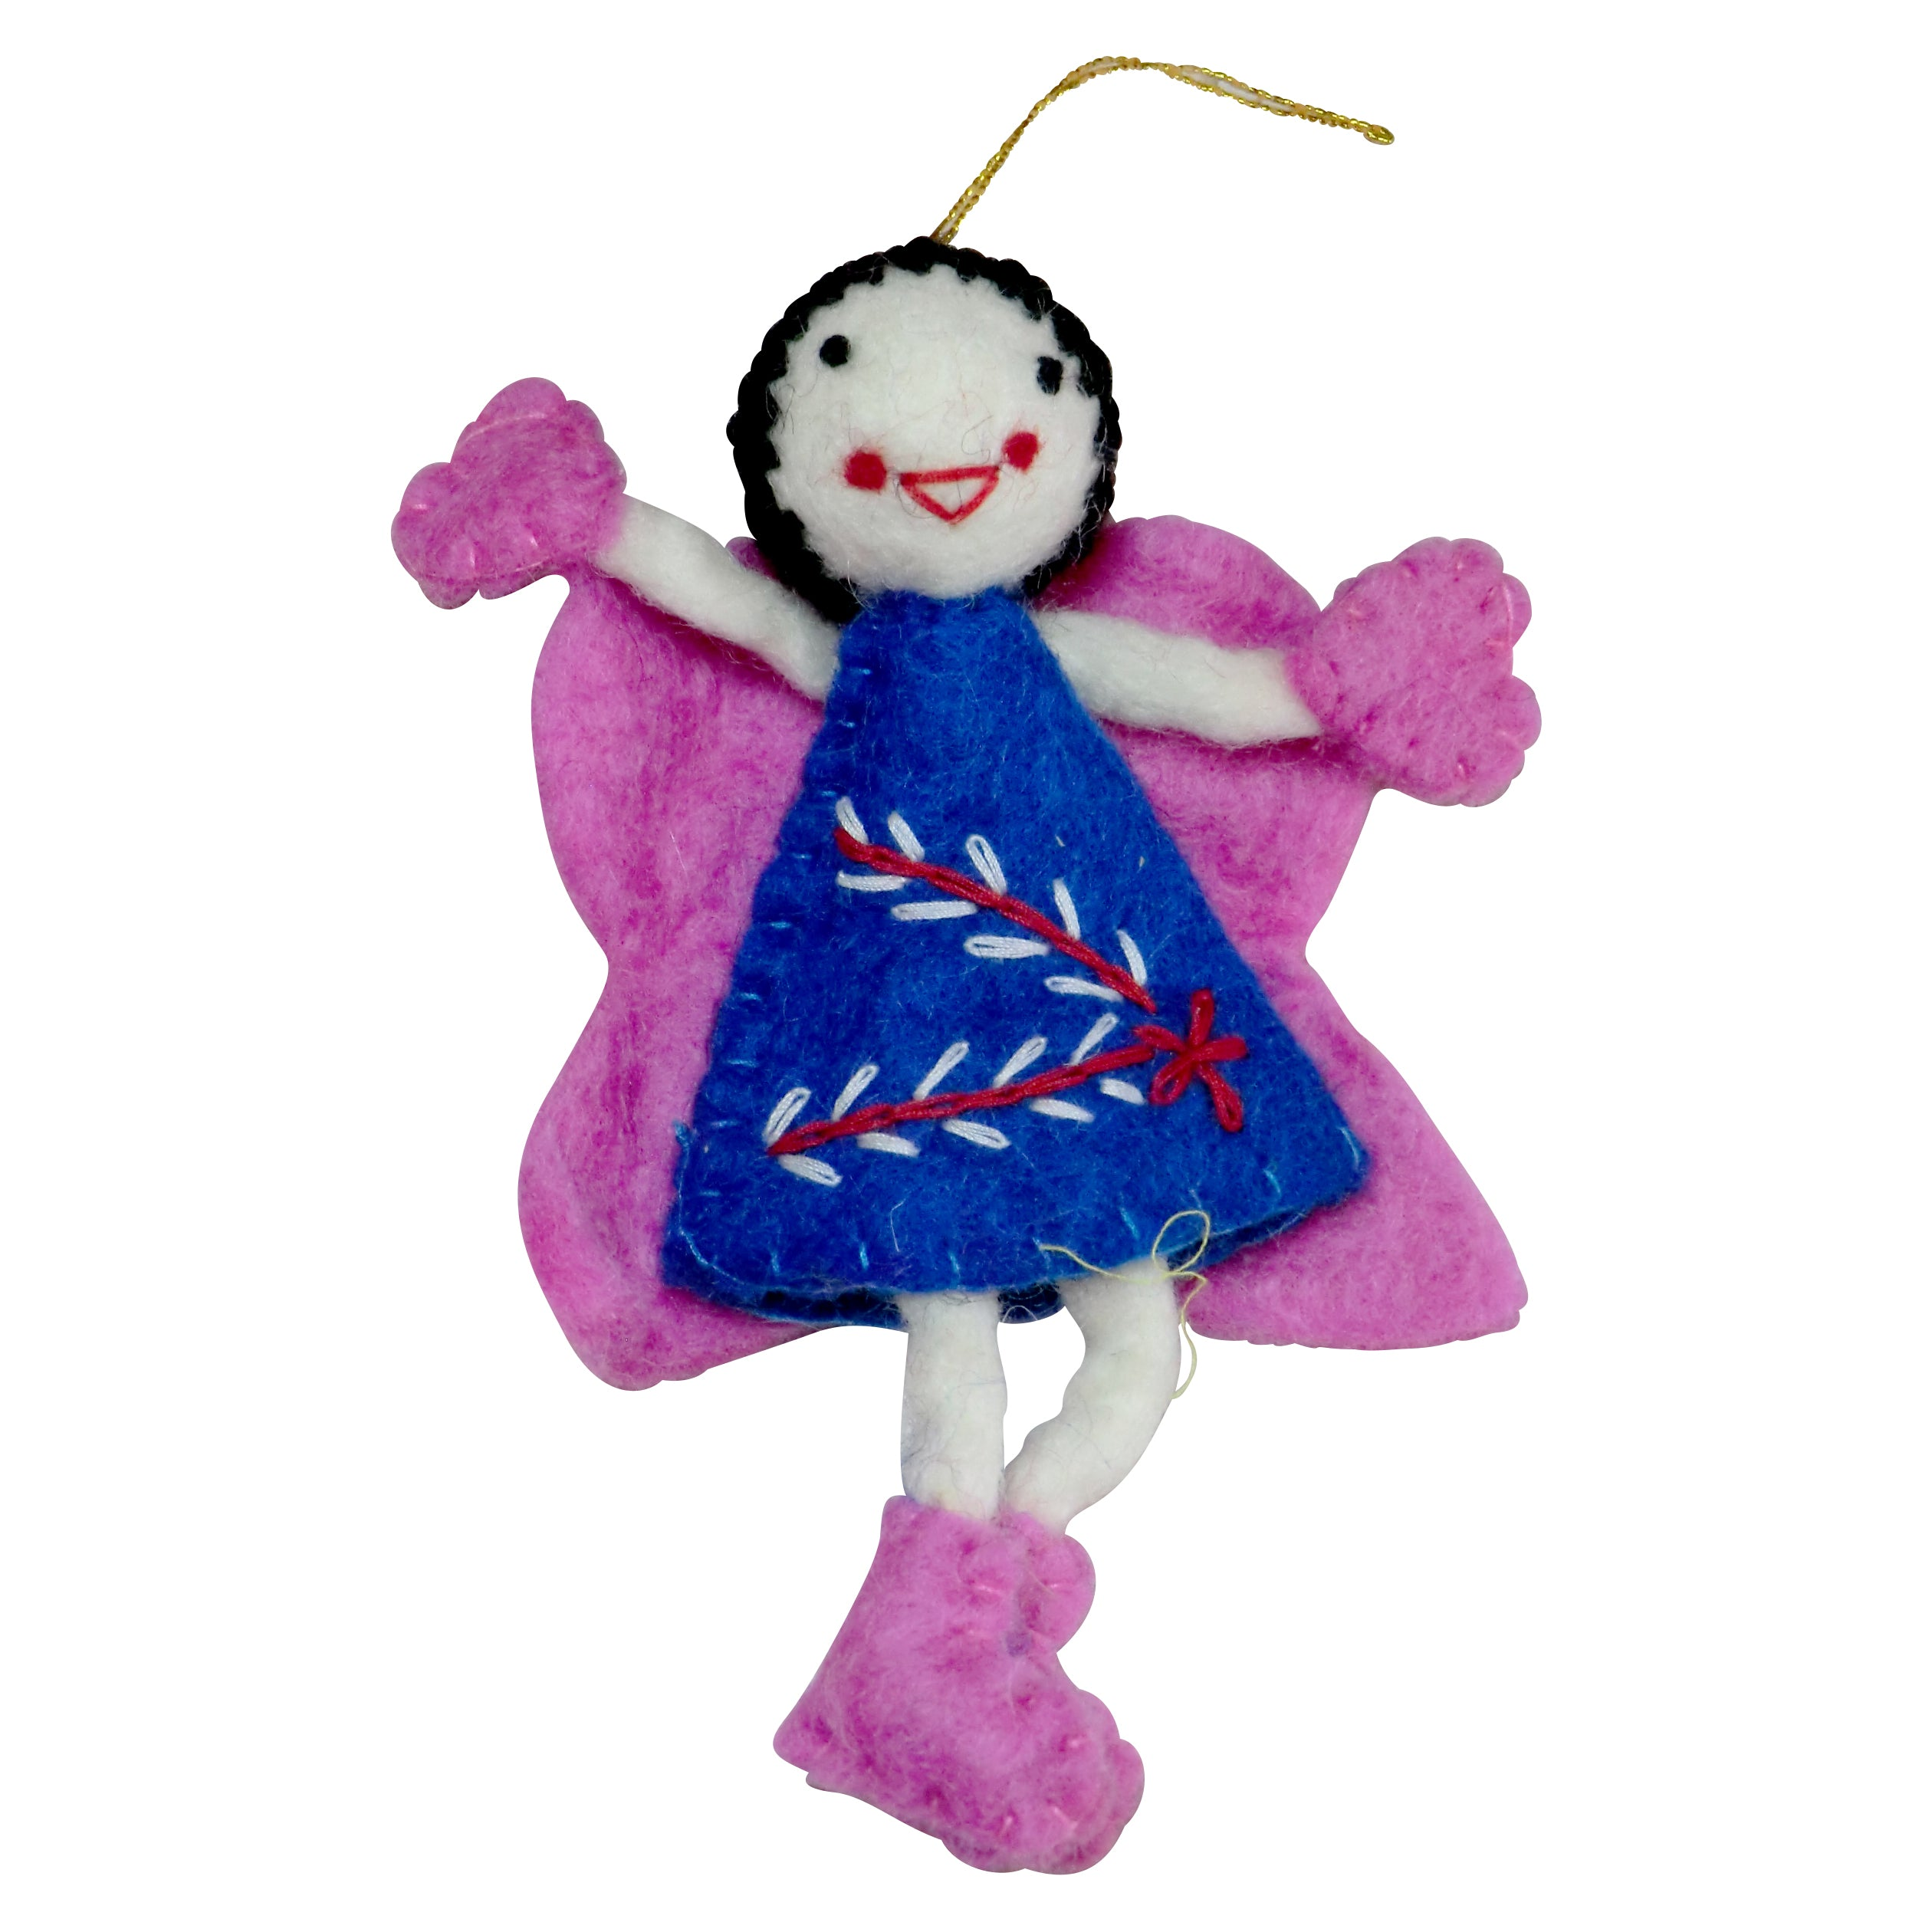 Felt Fairies - Matico